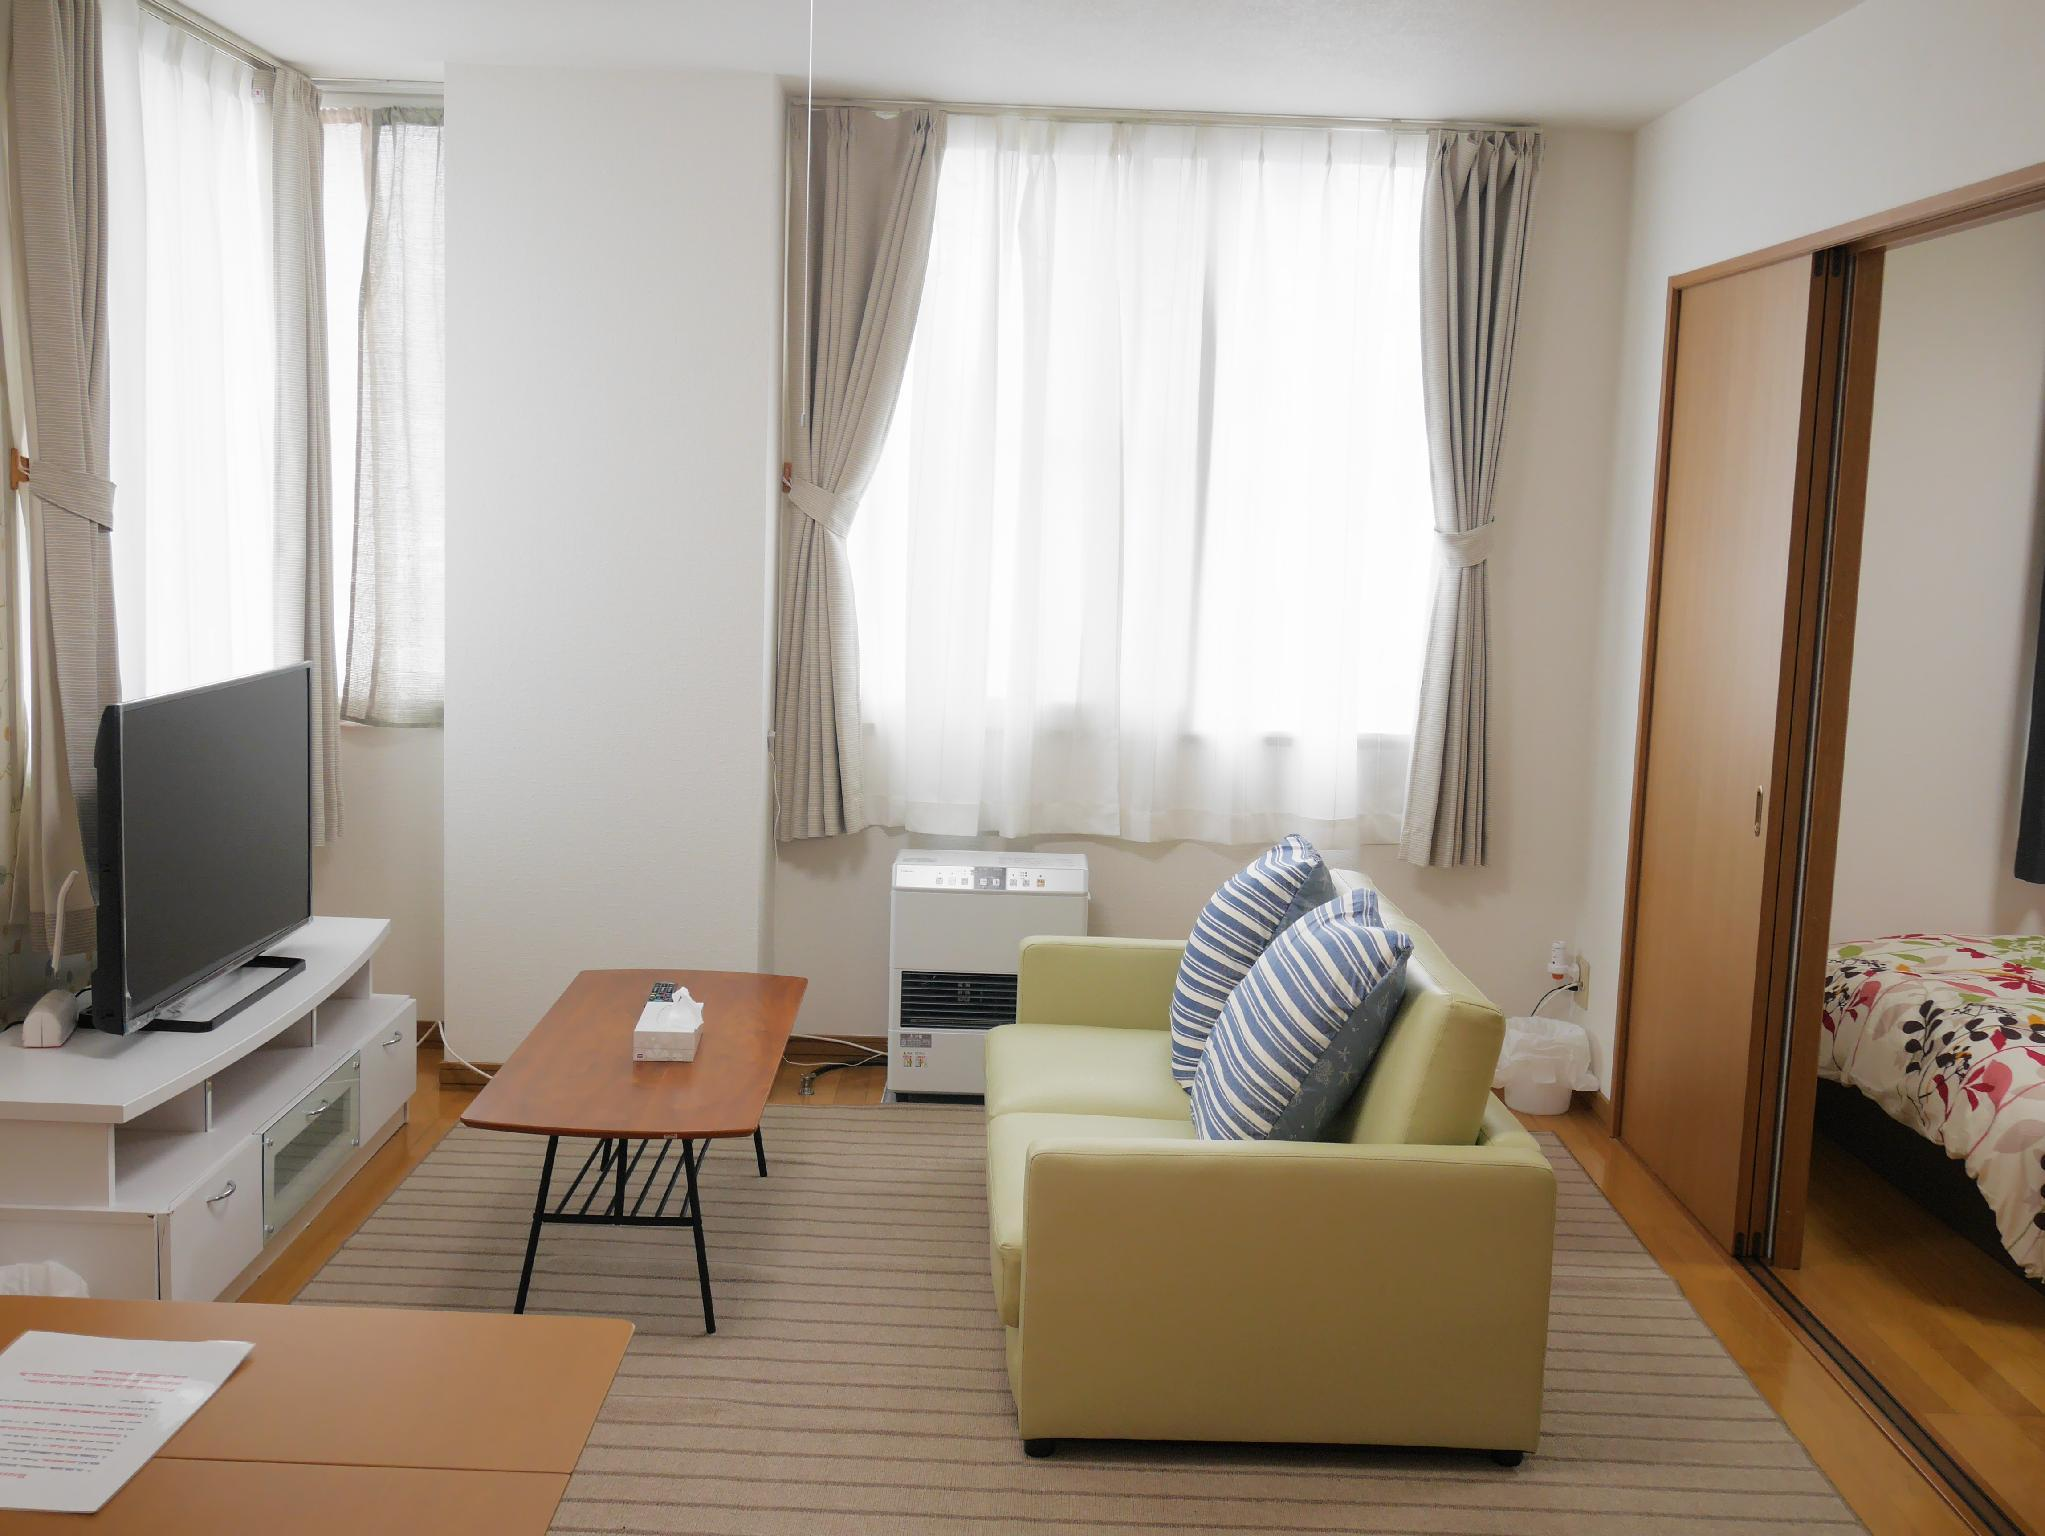 KB 1 Bedroom Apartment In Sapporo NK201